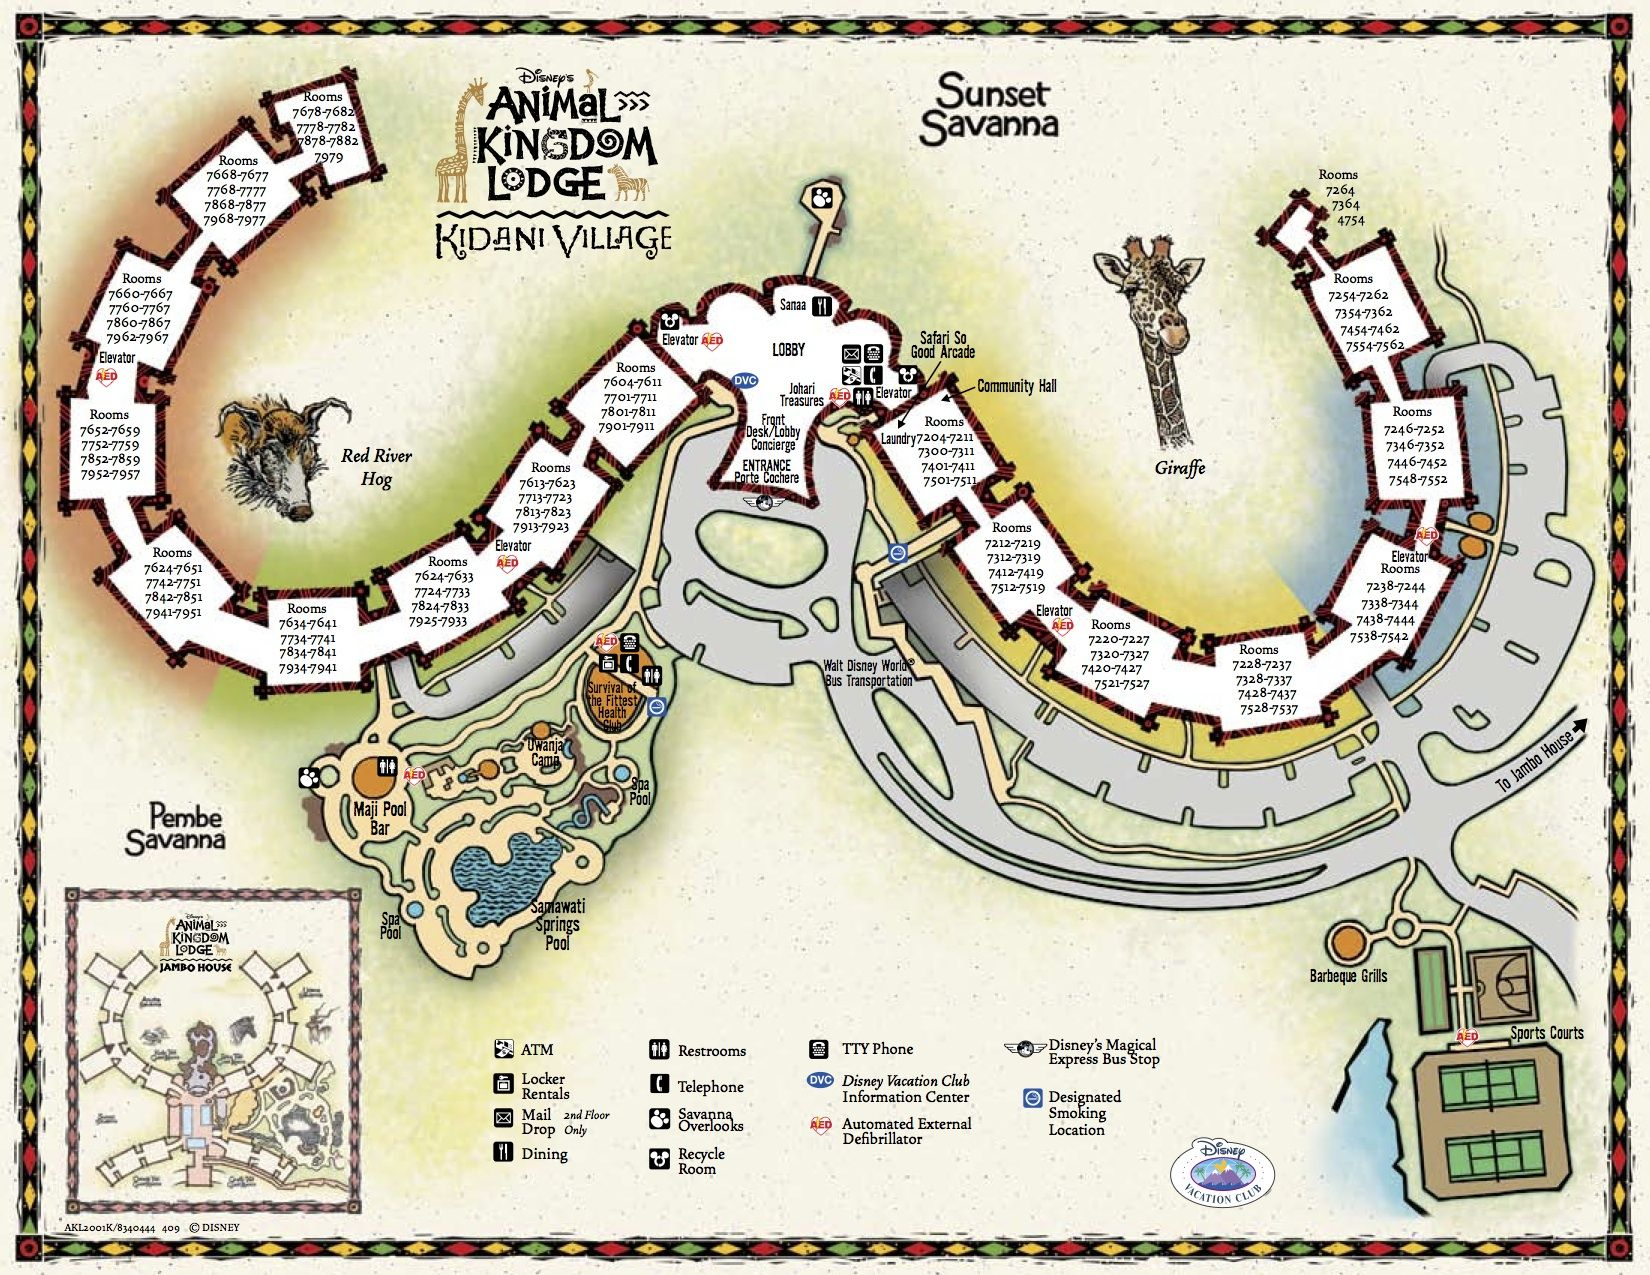 DVC Kidani Village Map | Animal Kingdom Villas DVC in 2019 | Disney on dolphin map, garden spot village map, new orleans square map, expedition everest map, contemporary map, main street usa map, disney magic map, sanaa map, pirates of the caribbean map, kearney village map, wilderness lodge map, disney dream map, pop century map, hong village map, art of animation map, shades of green map, disney vacation club map, world showcase map, port orleans french quarter map, all star movies map,